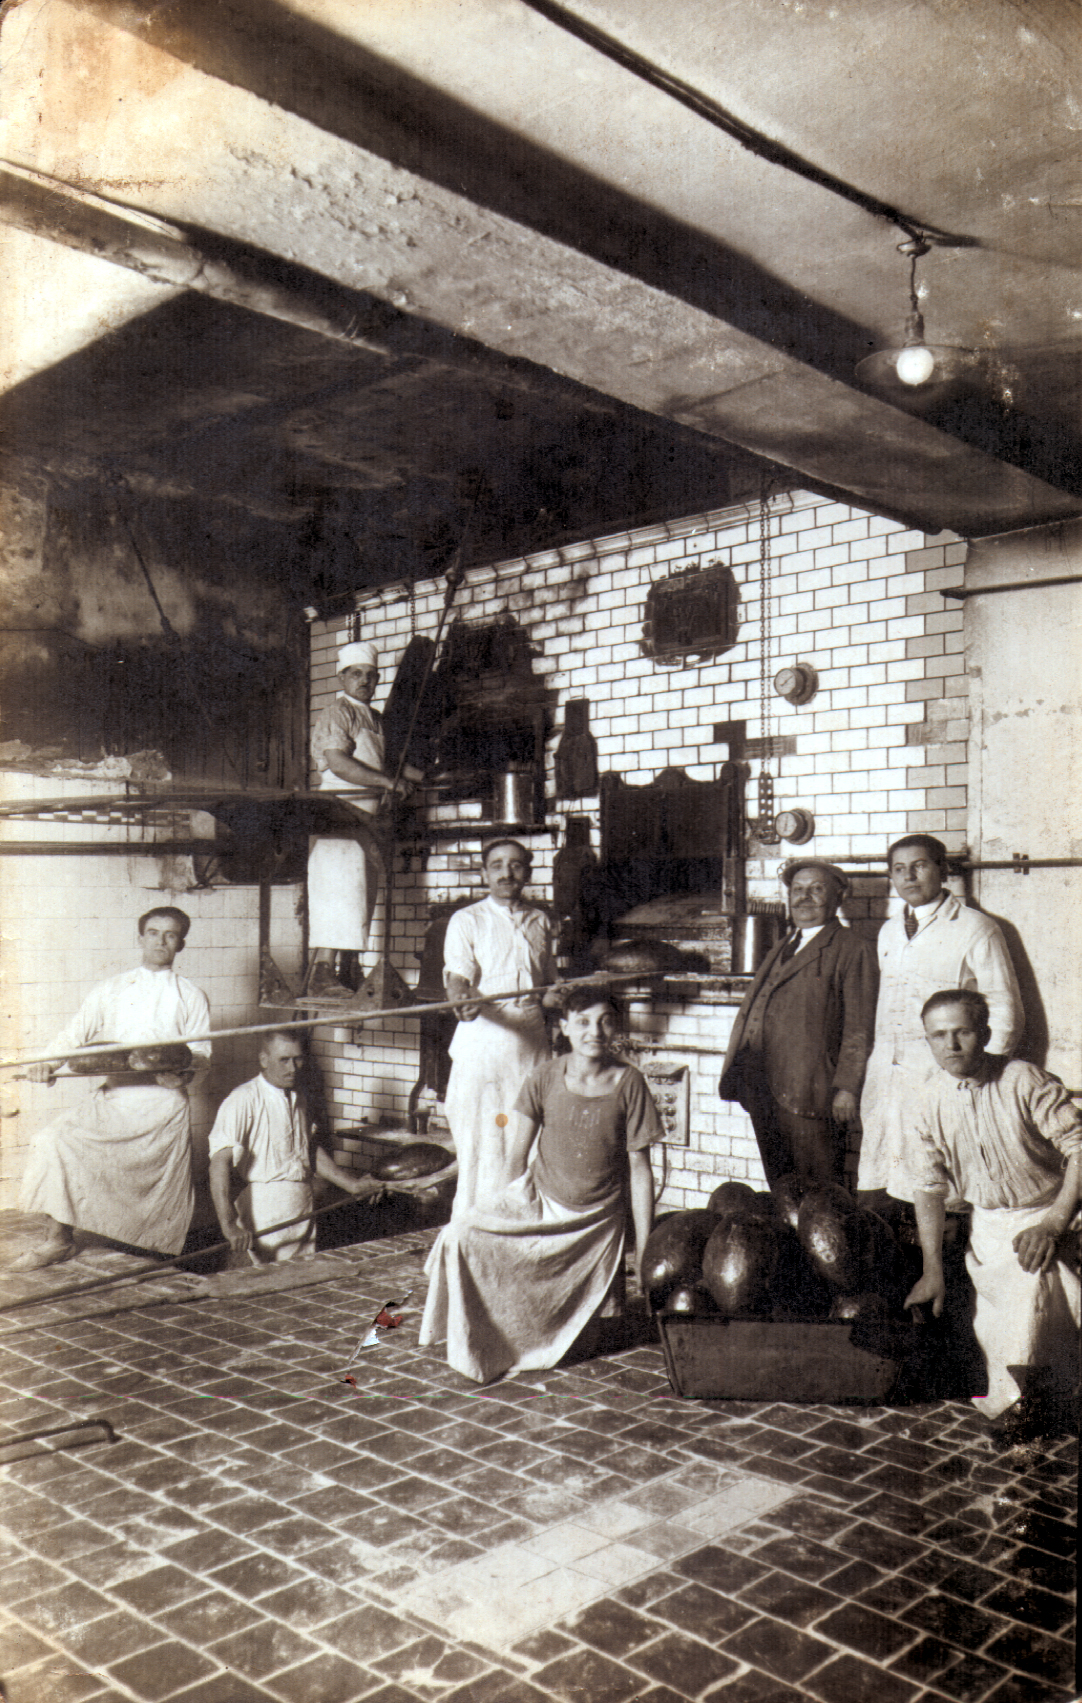 The bakery of Ilona Seifert's paternal grandfather Bernat Riemer